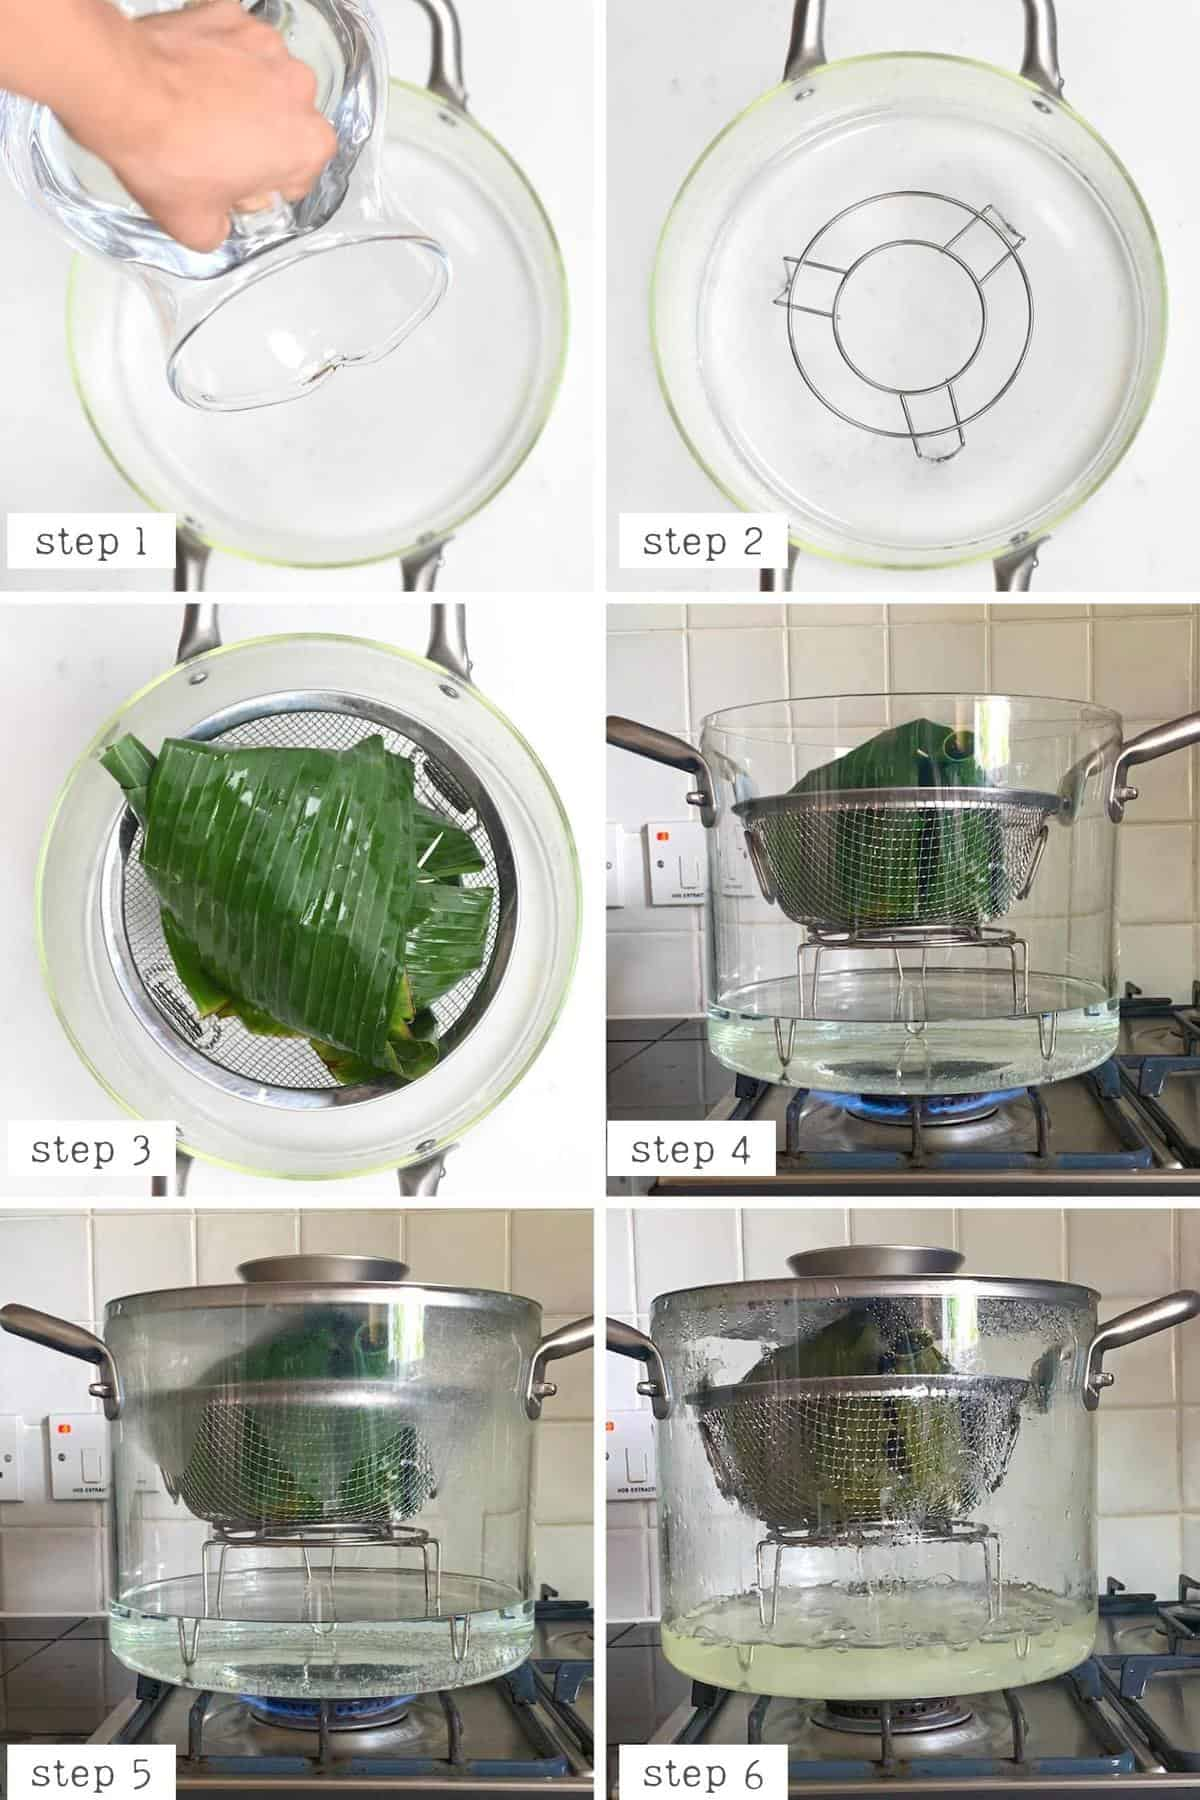 Cooking steps for cooking sticky rice